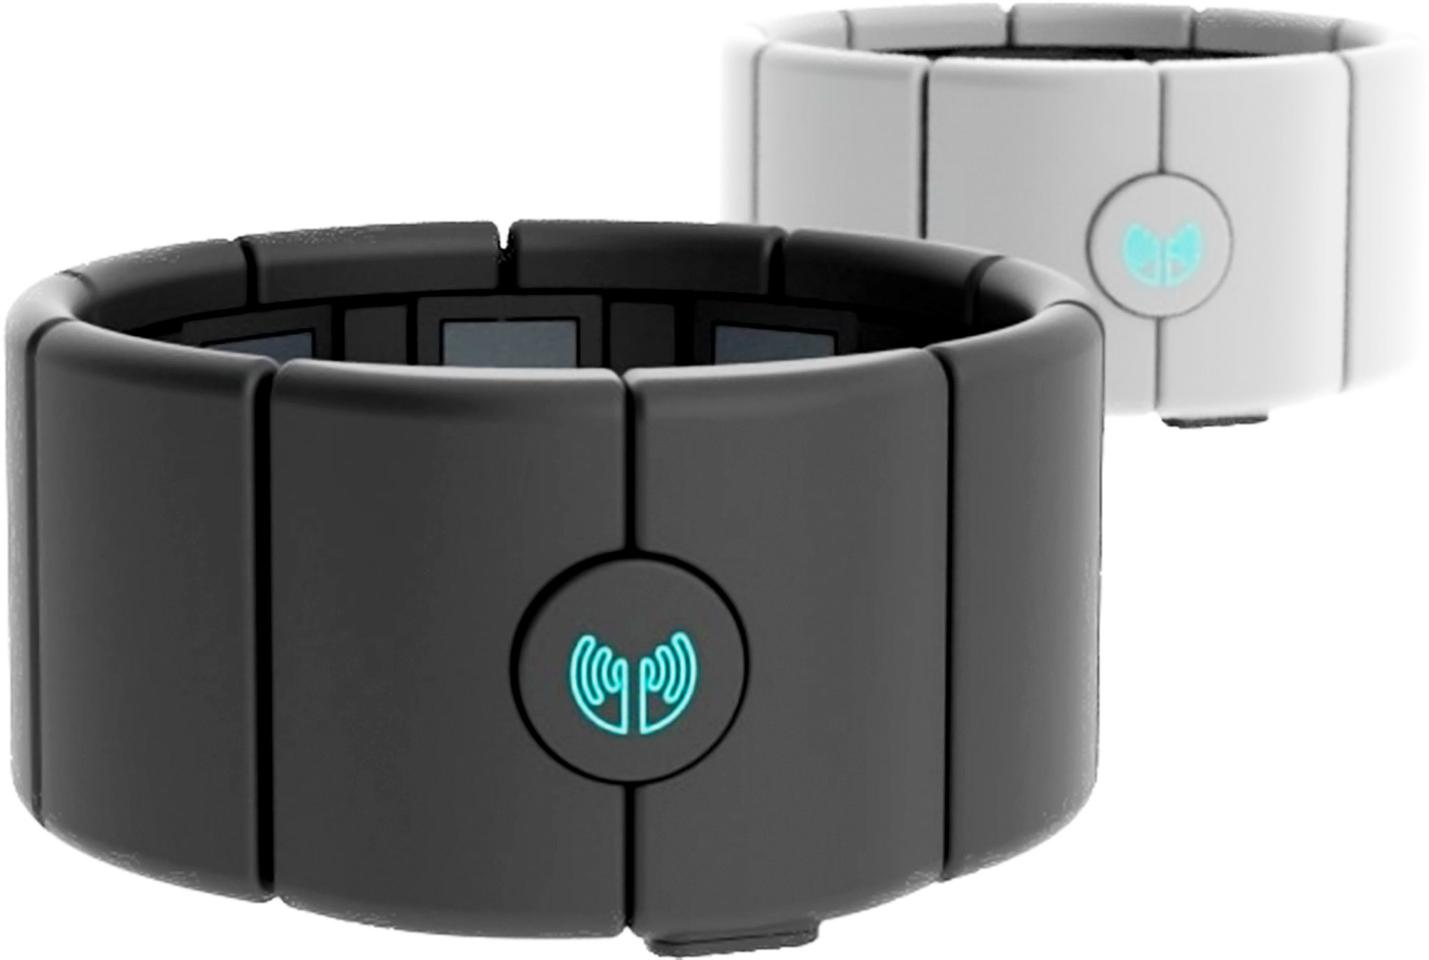 MYO is an armband that senses your muscular activity and movement through space